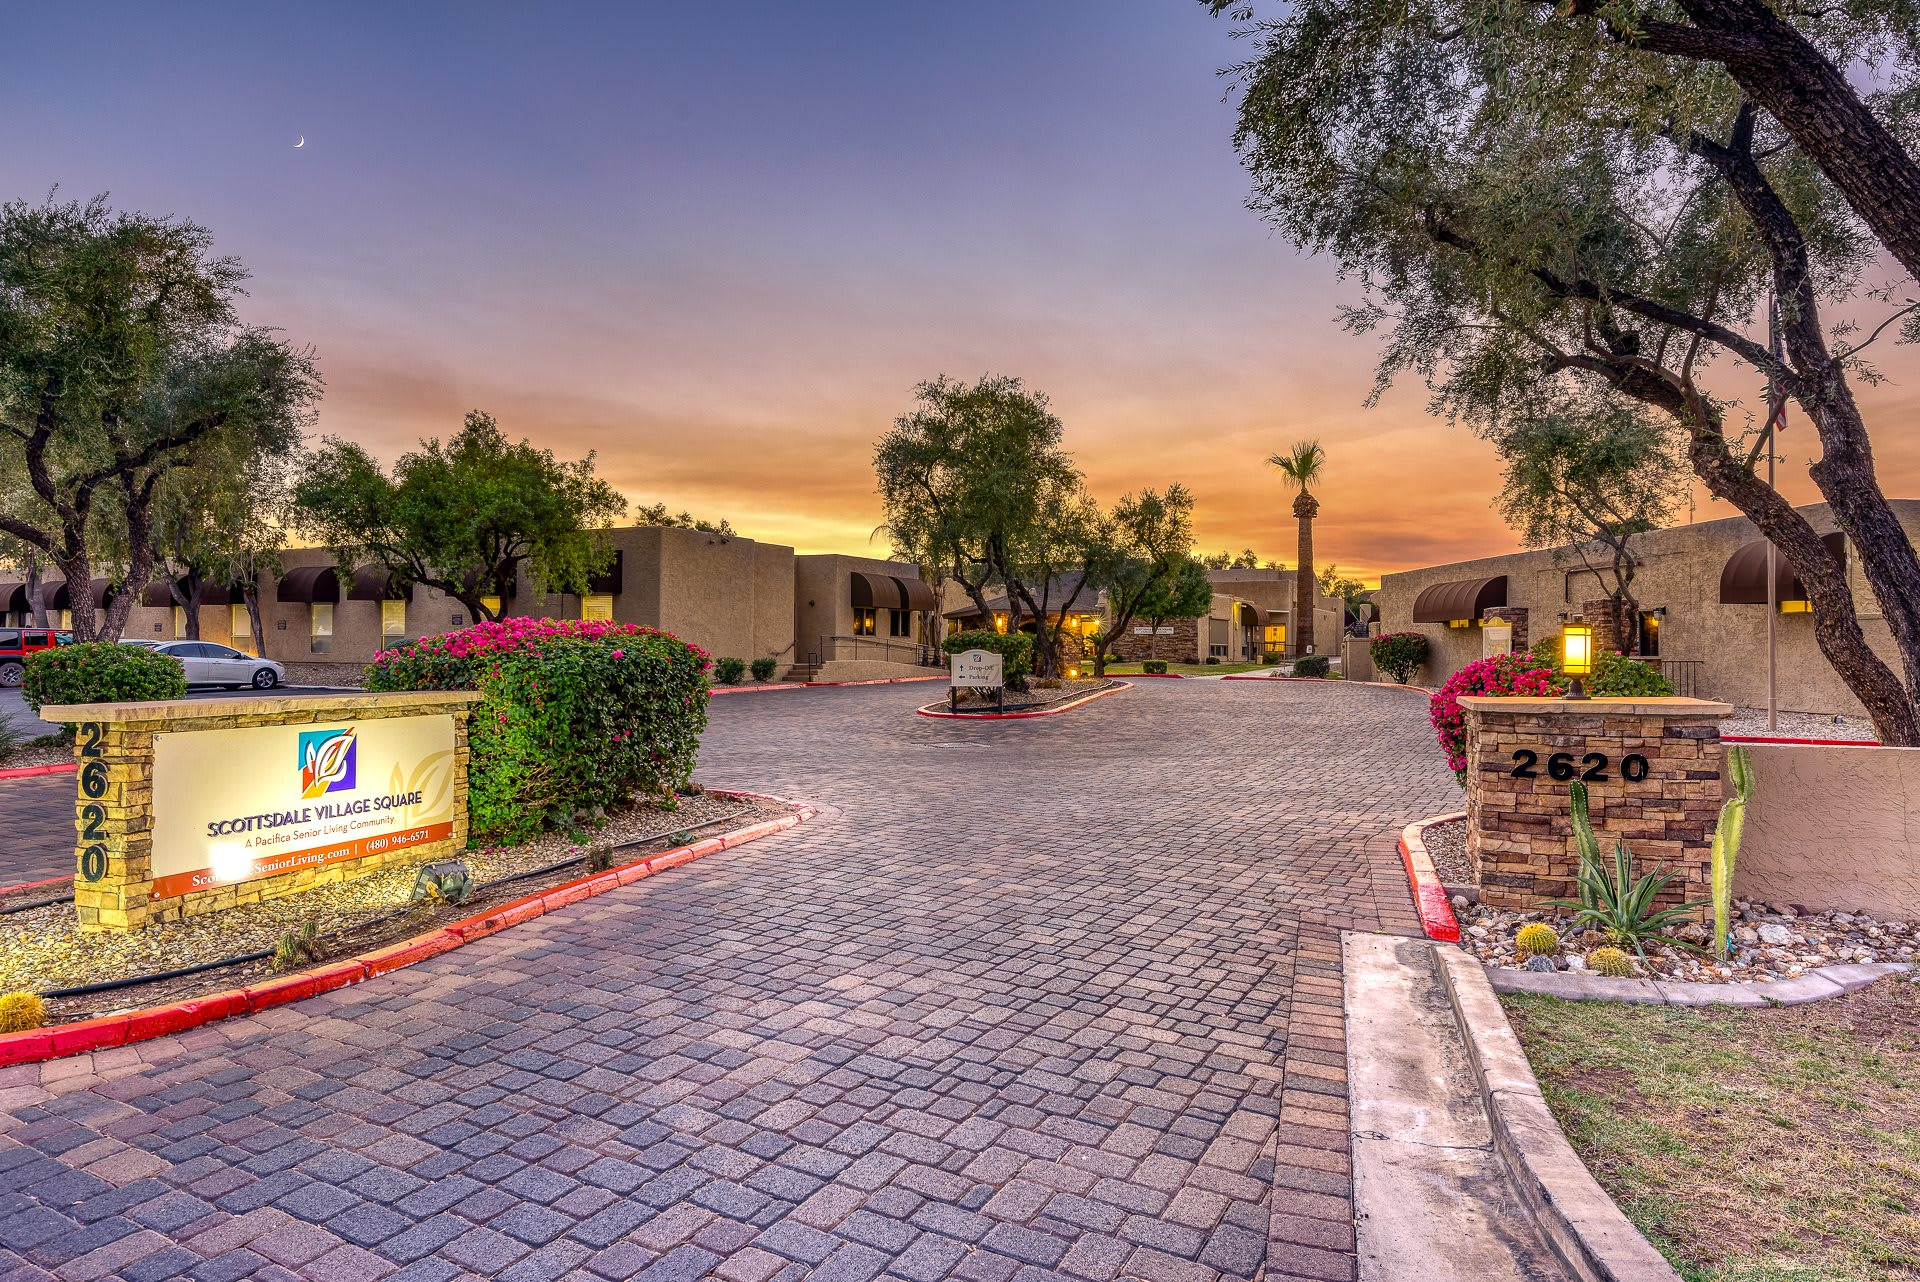 Photo 1 of Scottsdale Village Square, A Pacifica Senior Living Community